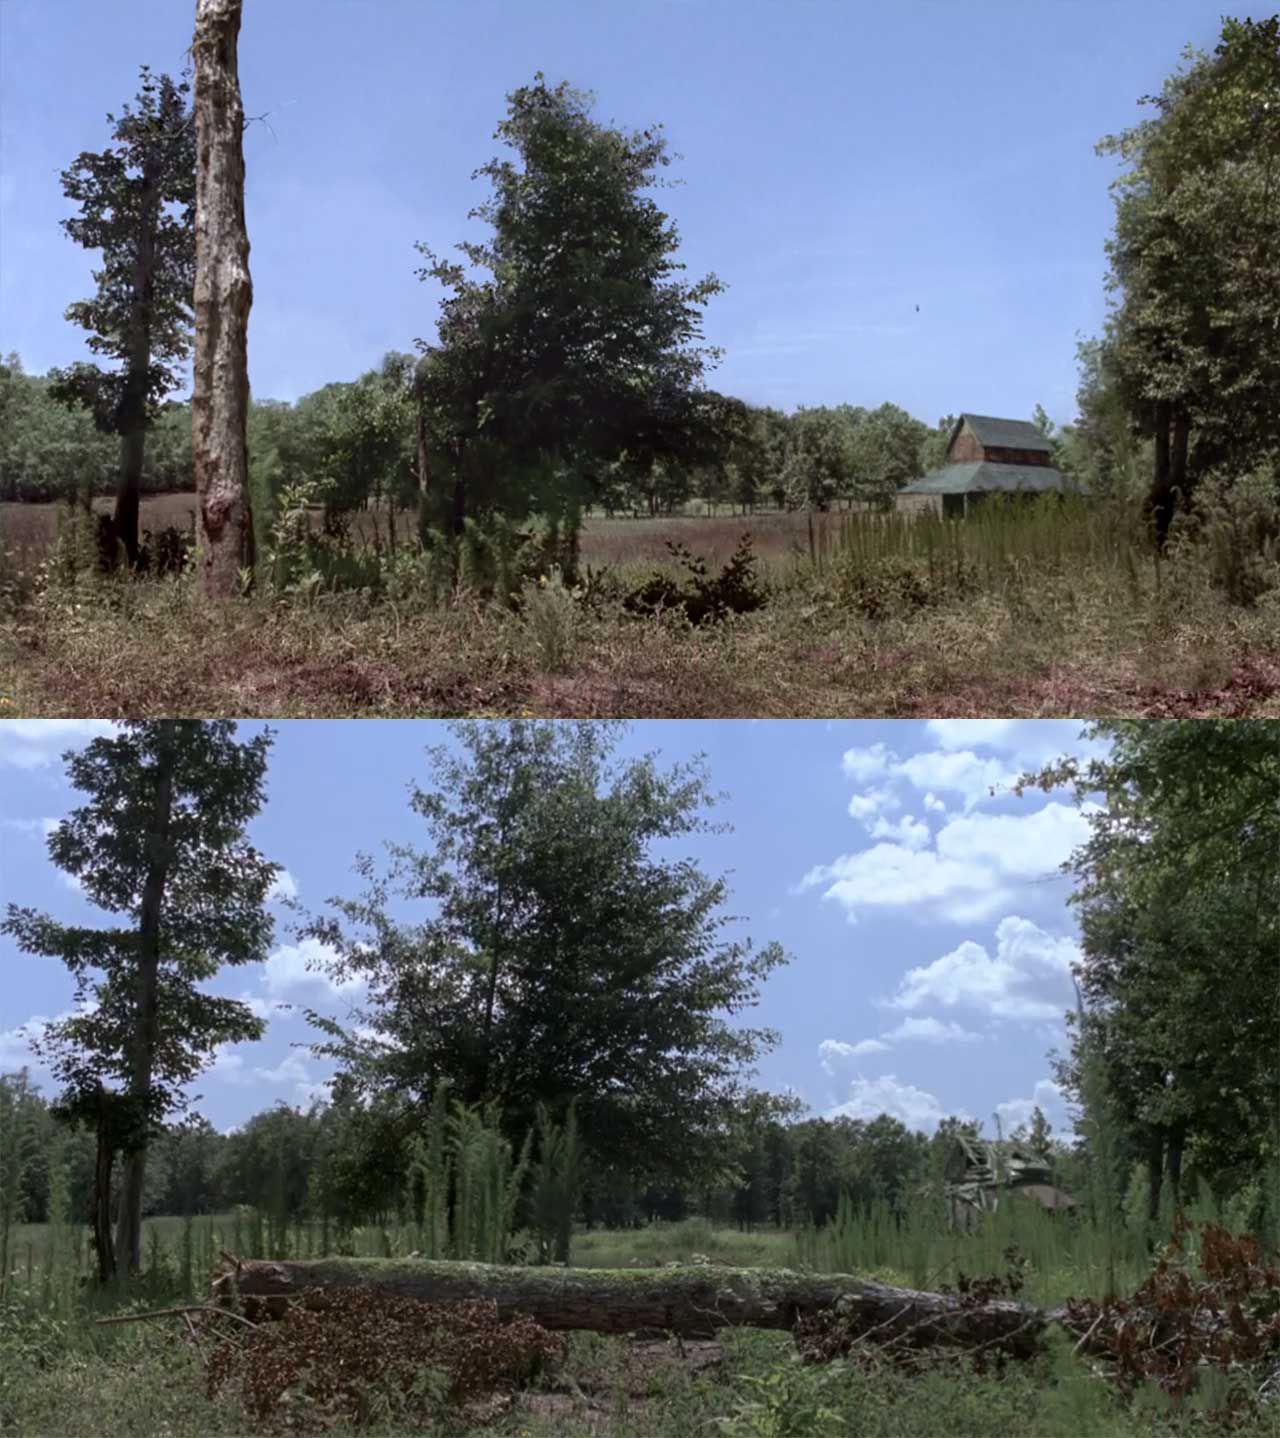 The-Walking-Dead-S09E05_Review_07 Review: The Walking Dead S09E05 - What Comes After